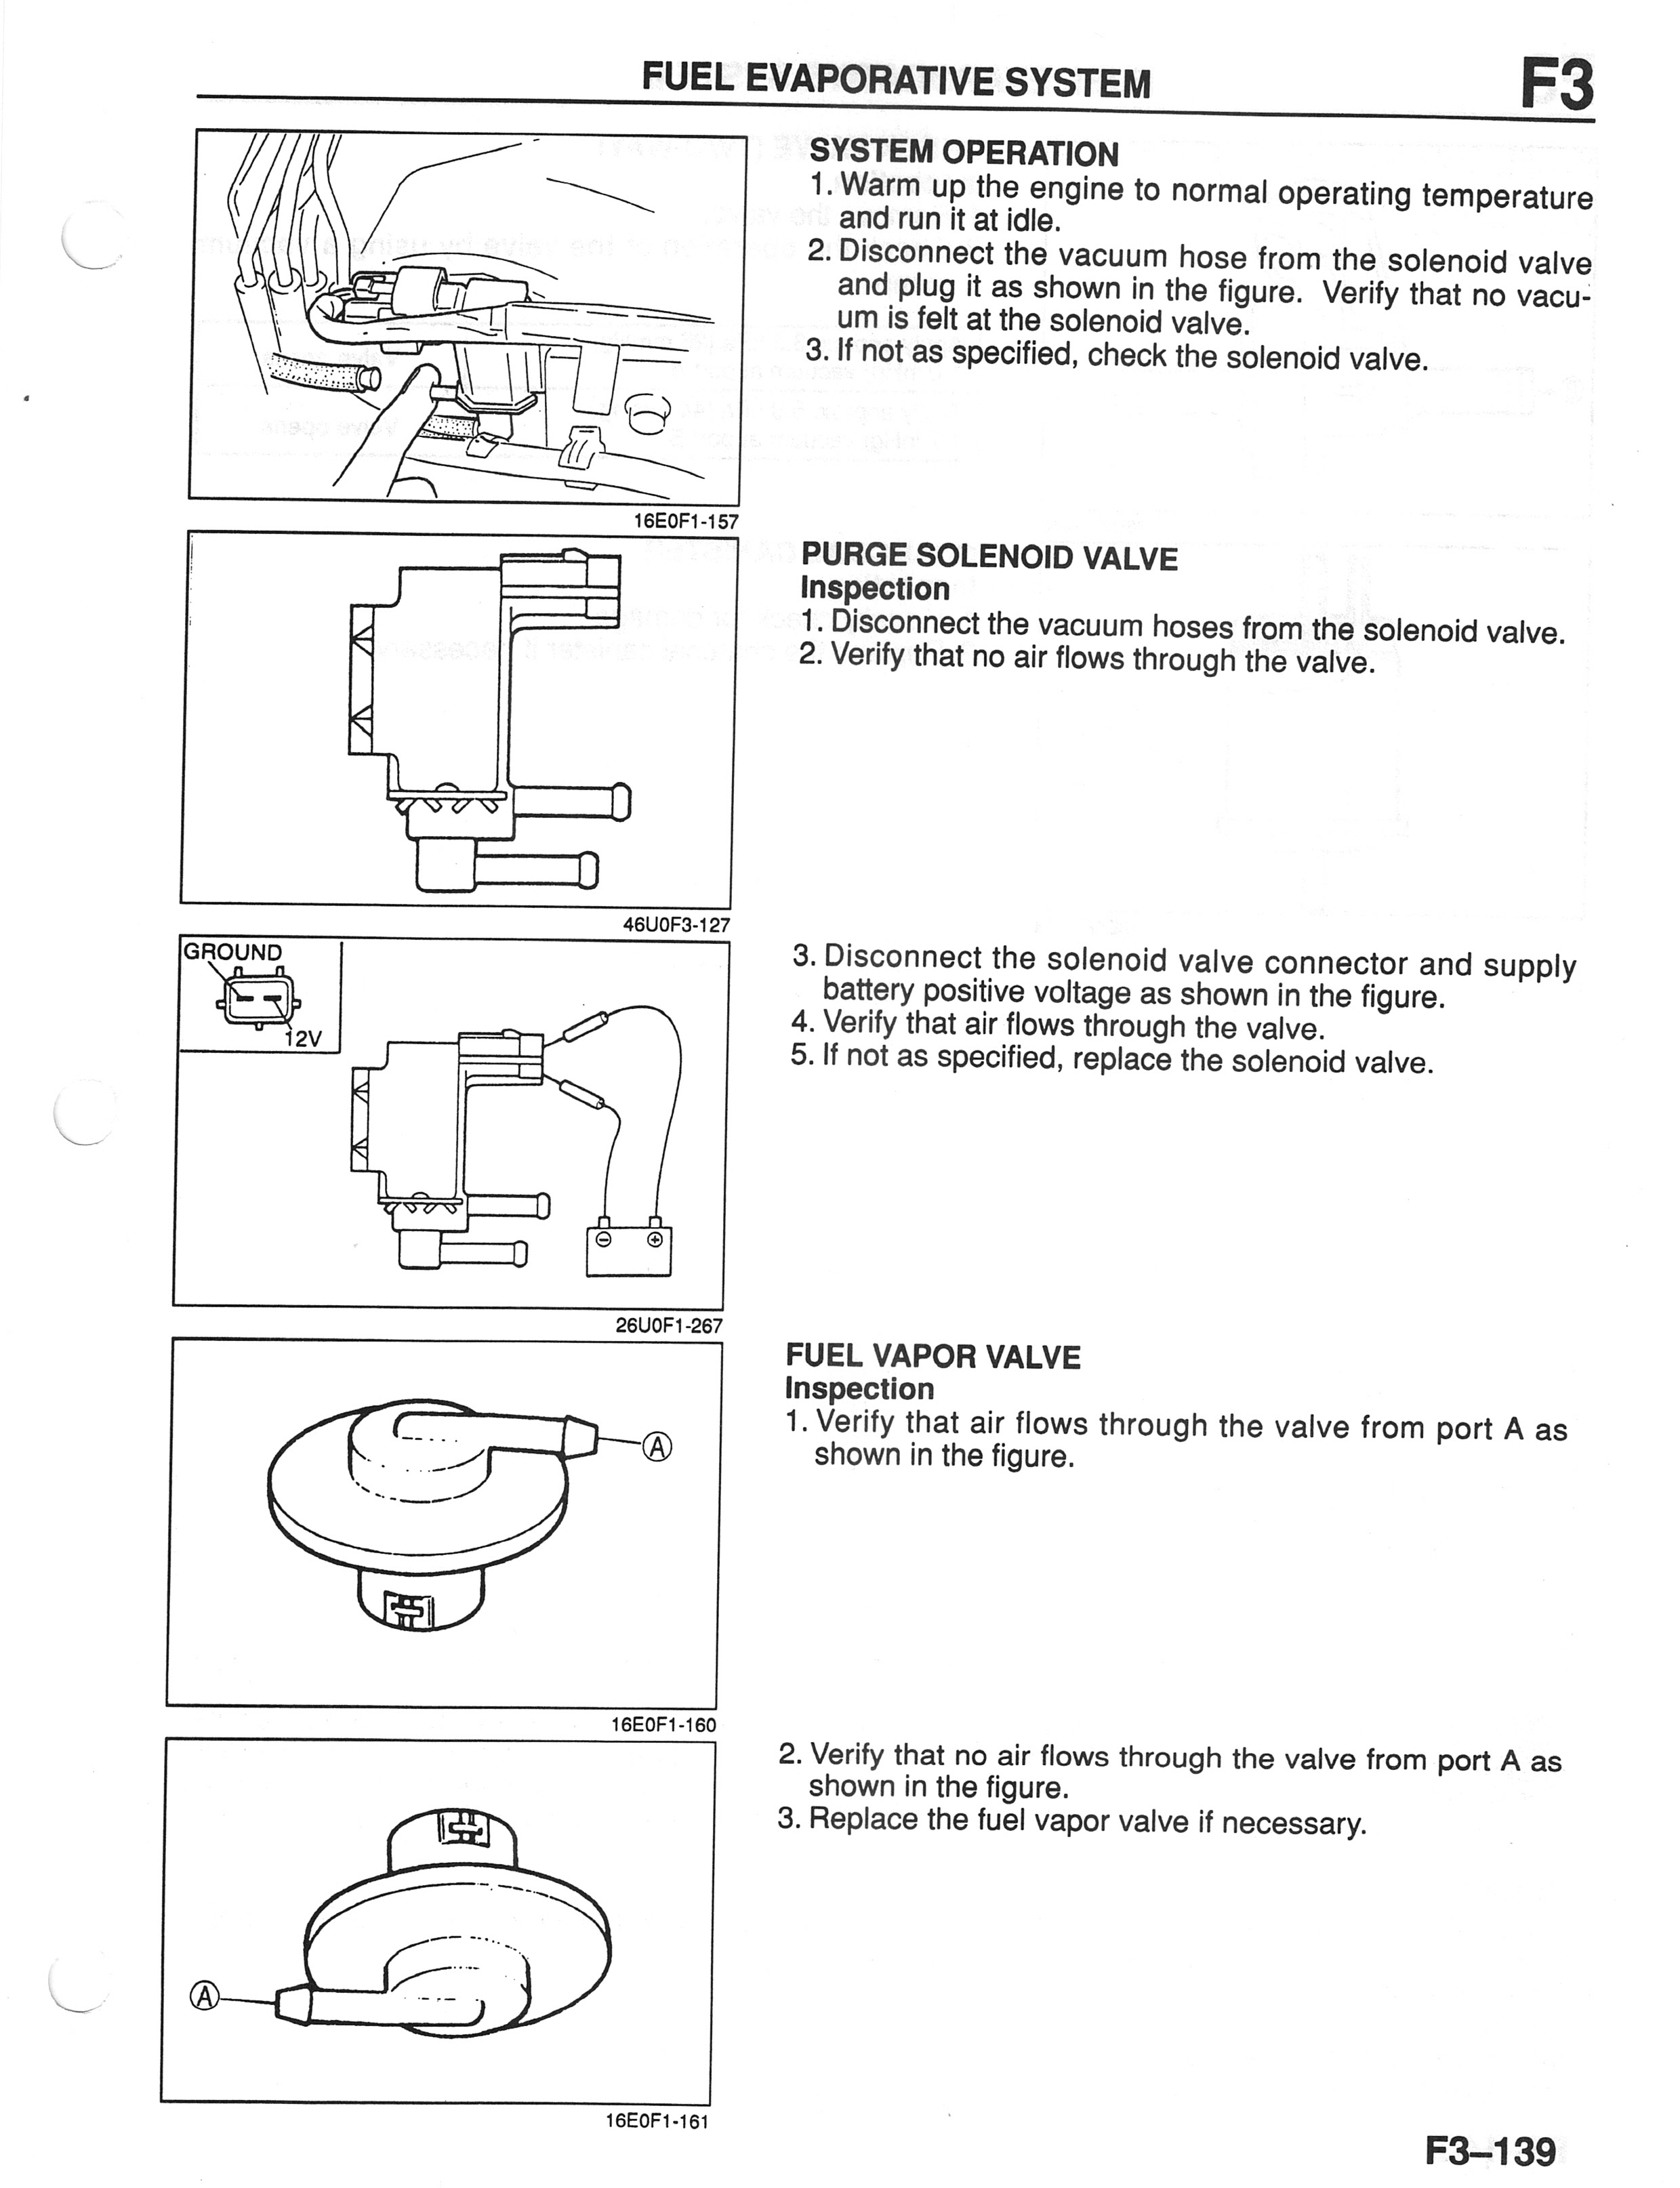 Meet The Purge Solenoid Tutorials How To Guides Mazda Protege Fuel Filter Location Img 341461 2 F3 139